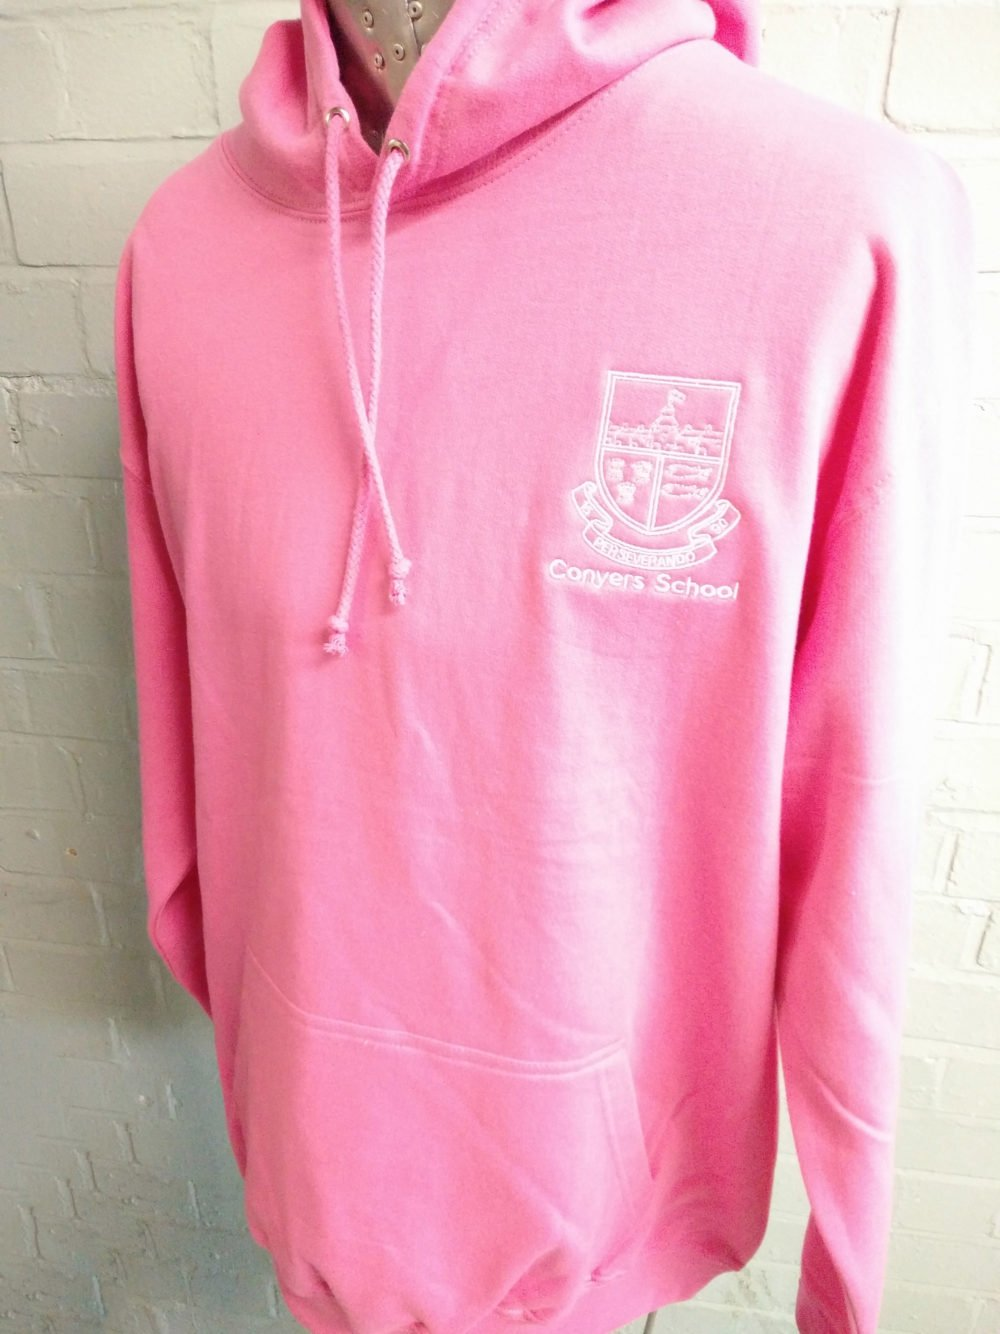 Conyers School Pink Leavers Hoodies 2017